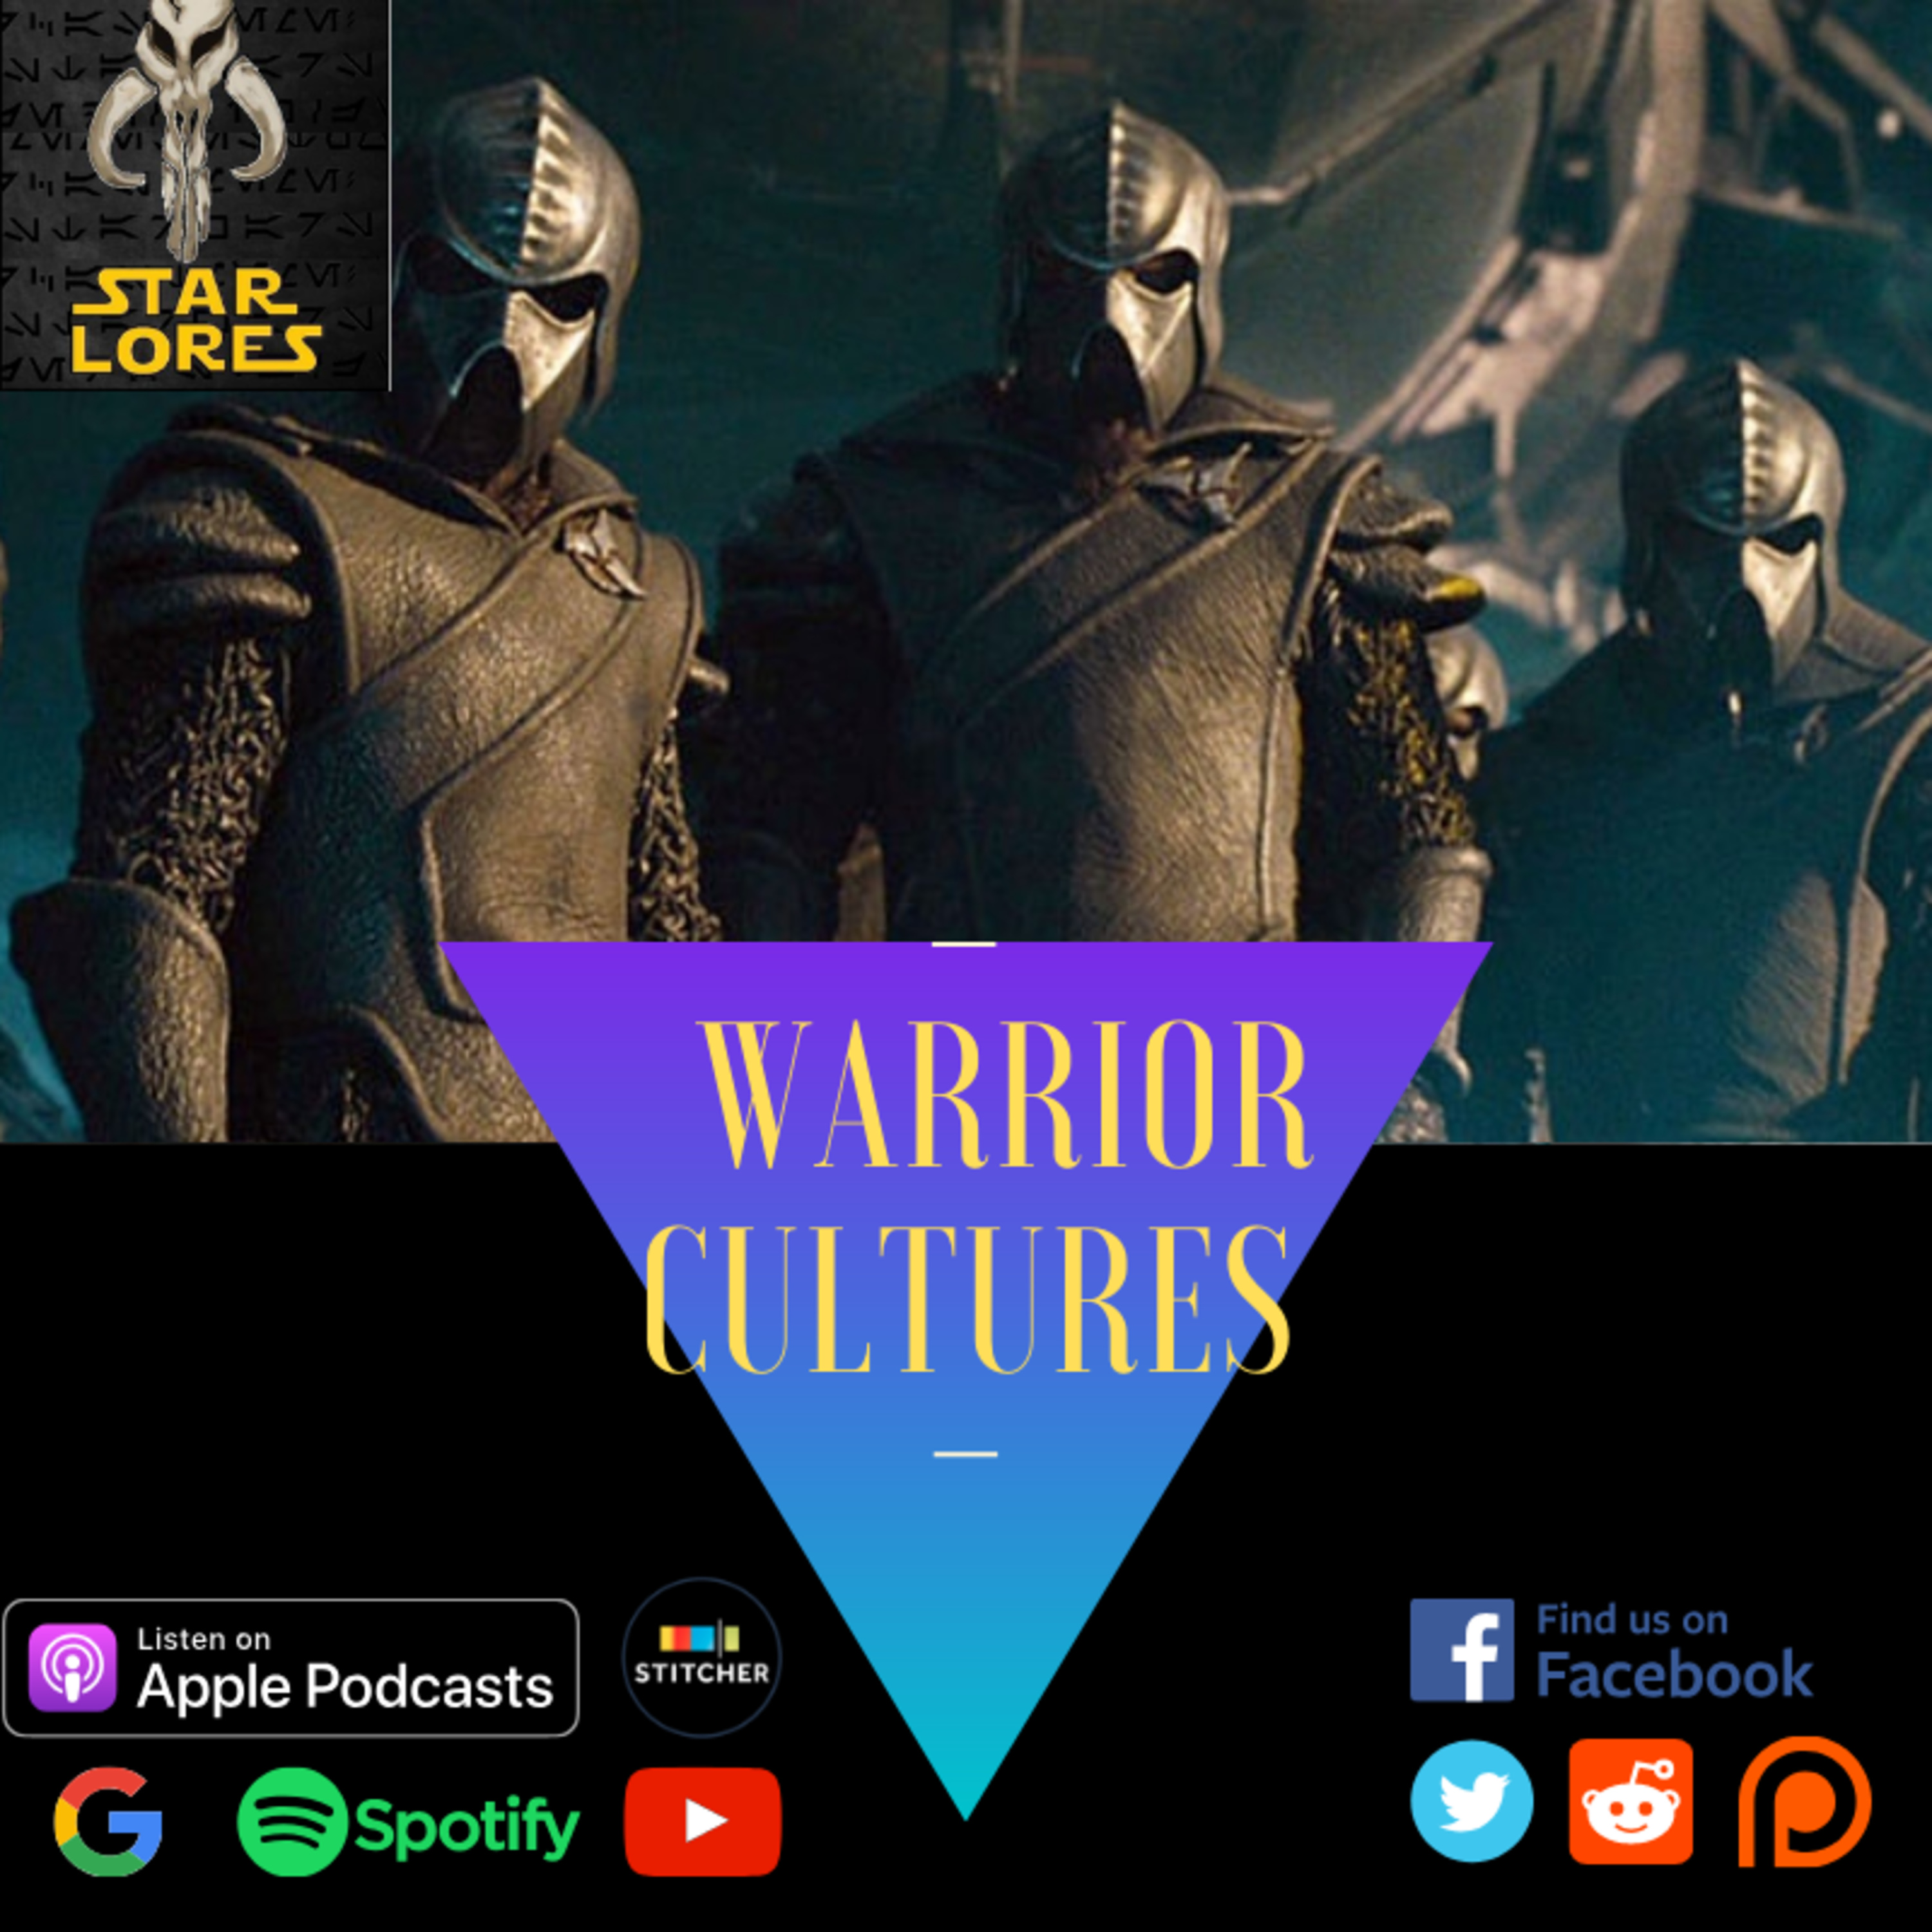 The Star Lores Podcast